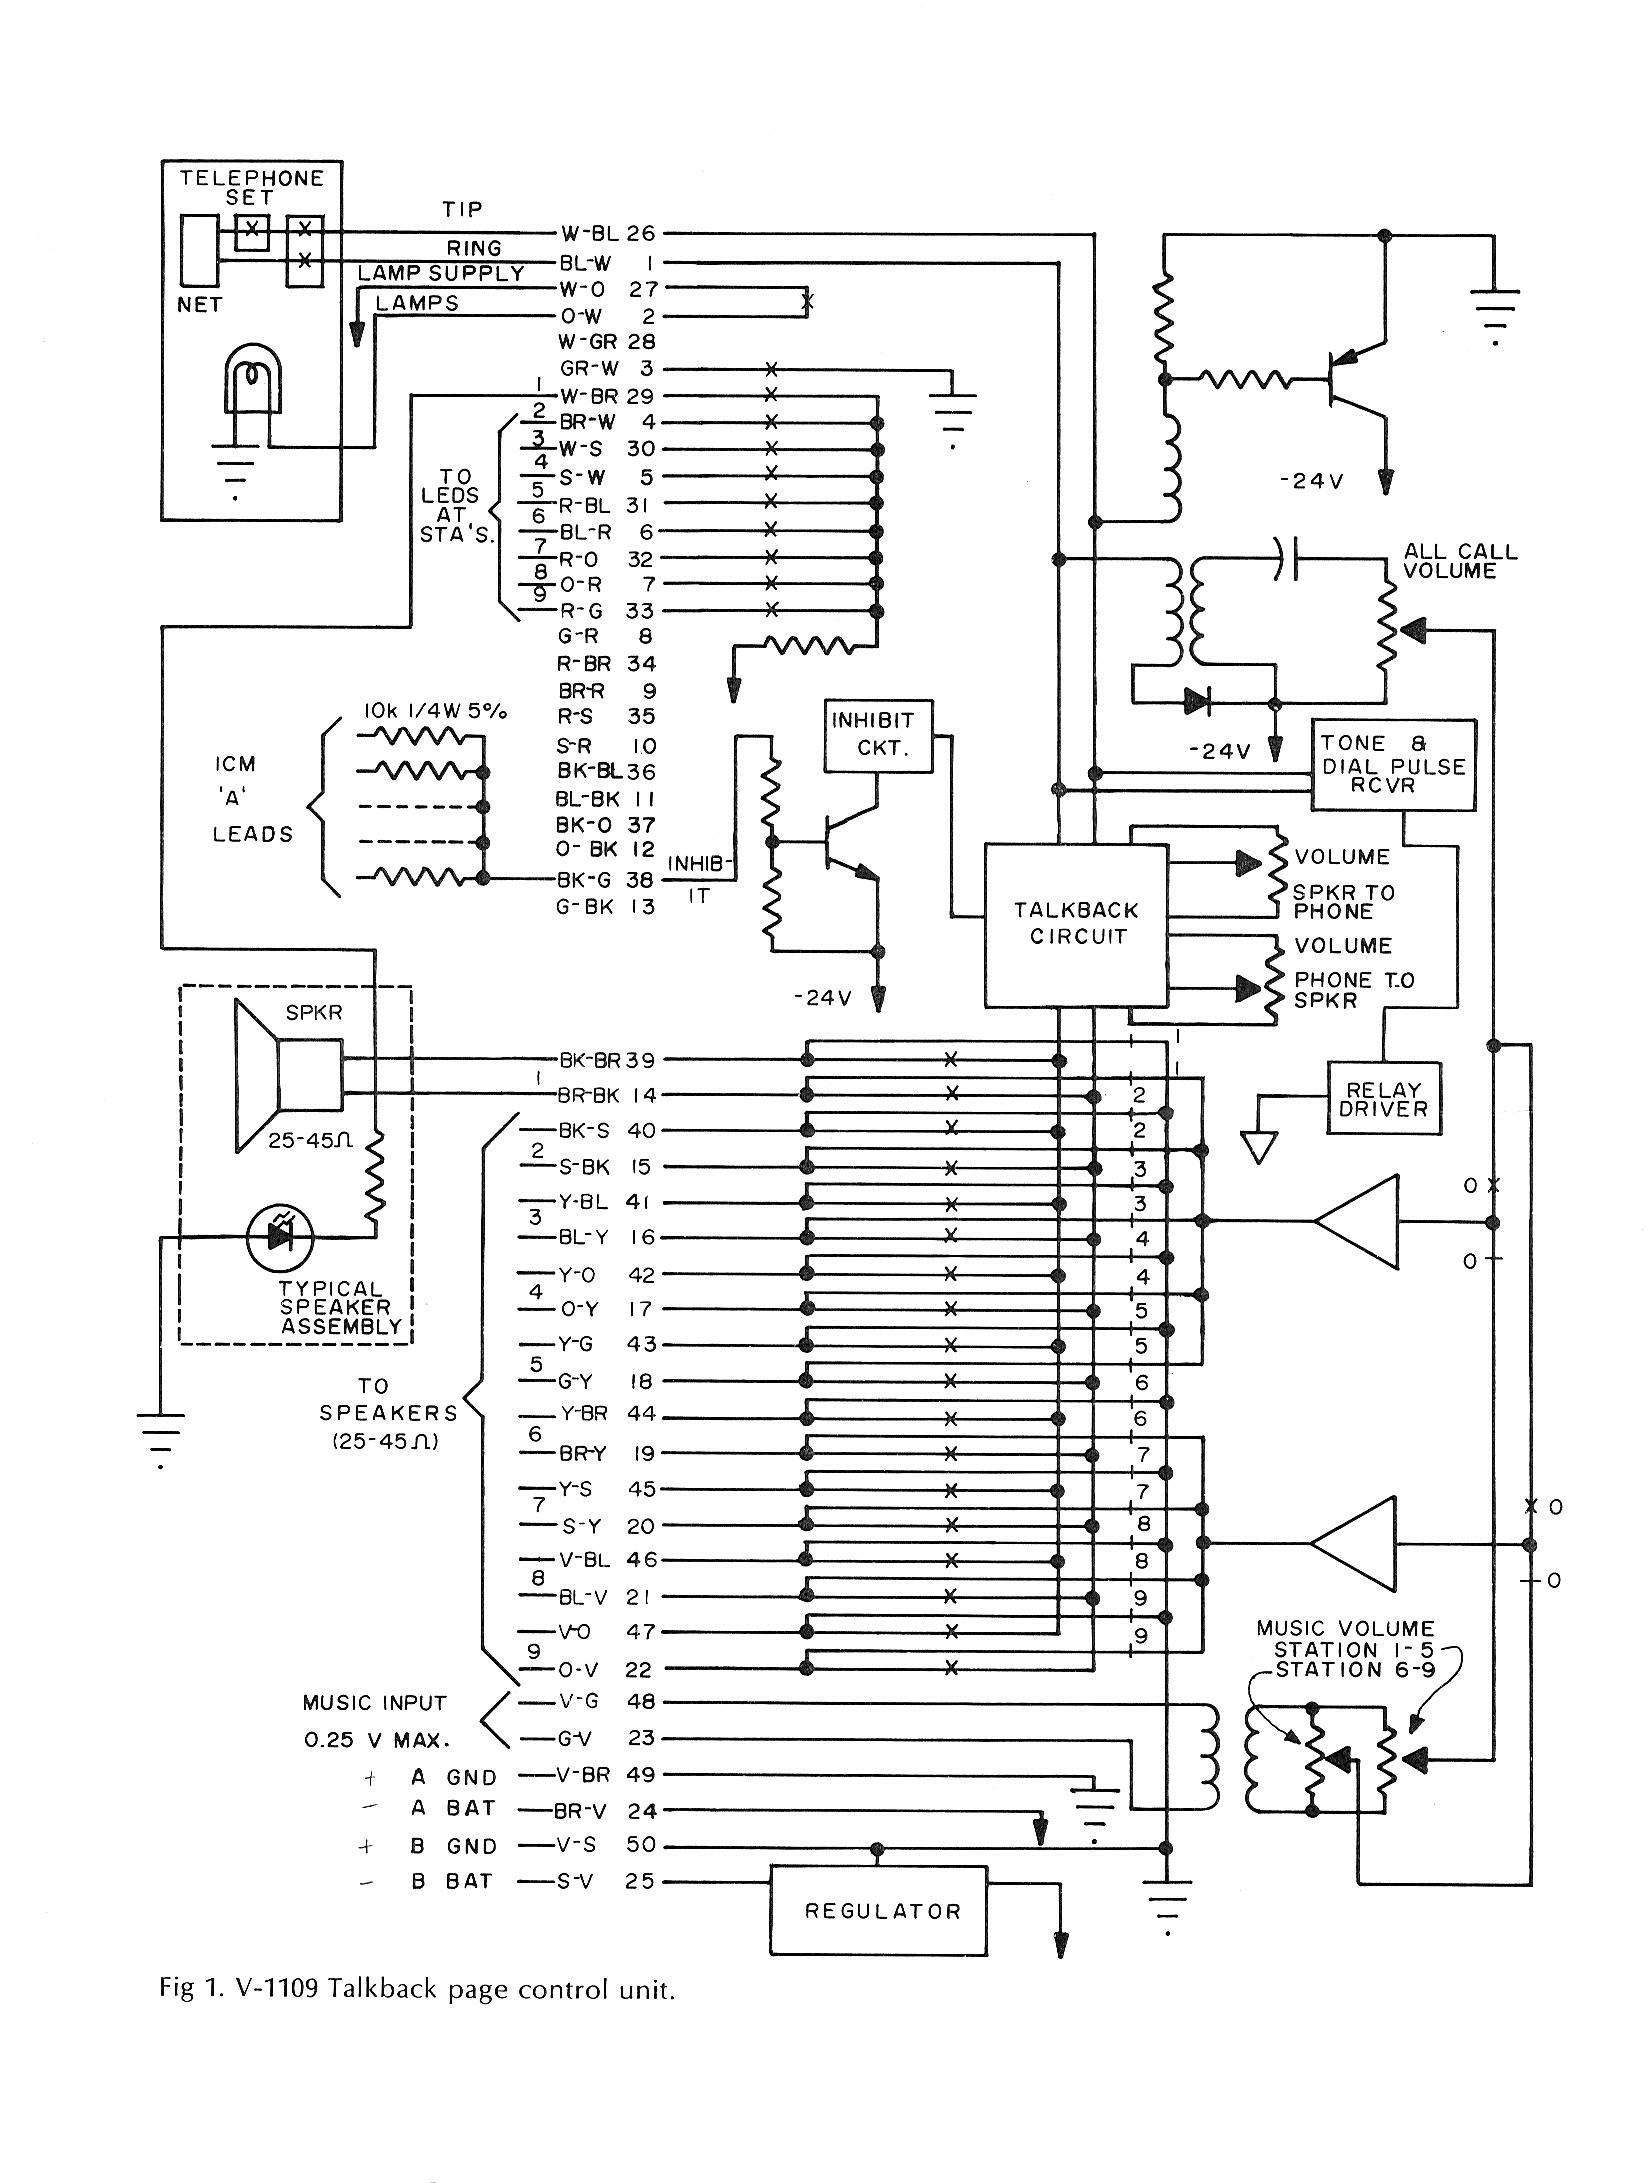 valcom1109 telephone technical references western electric 554 wiring diagram at mifinder.co